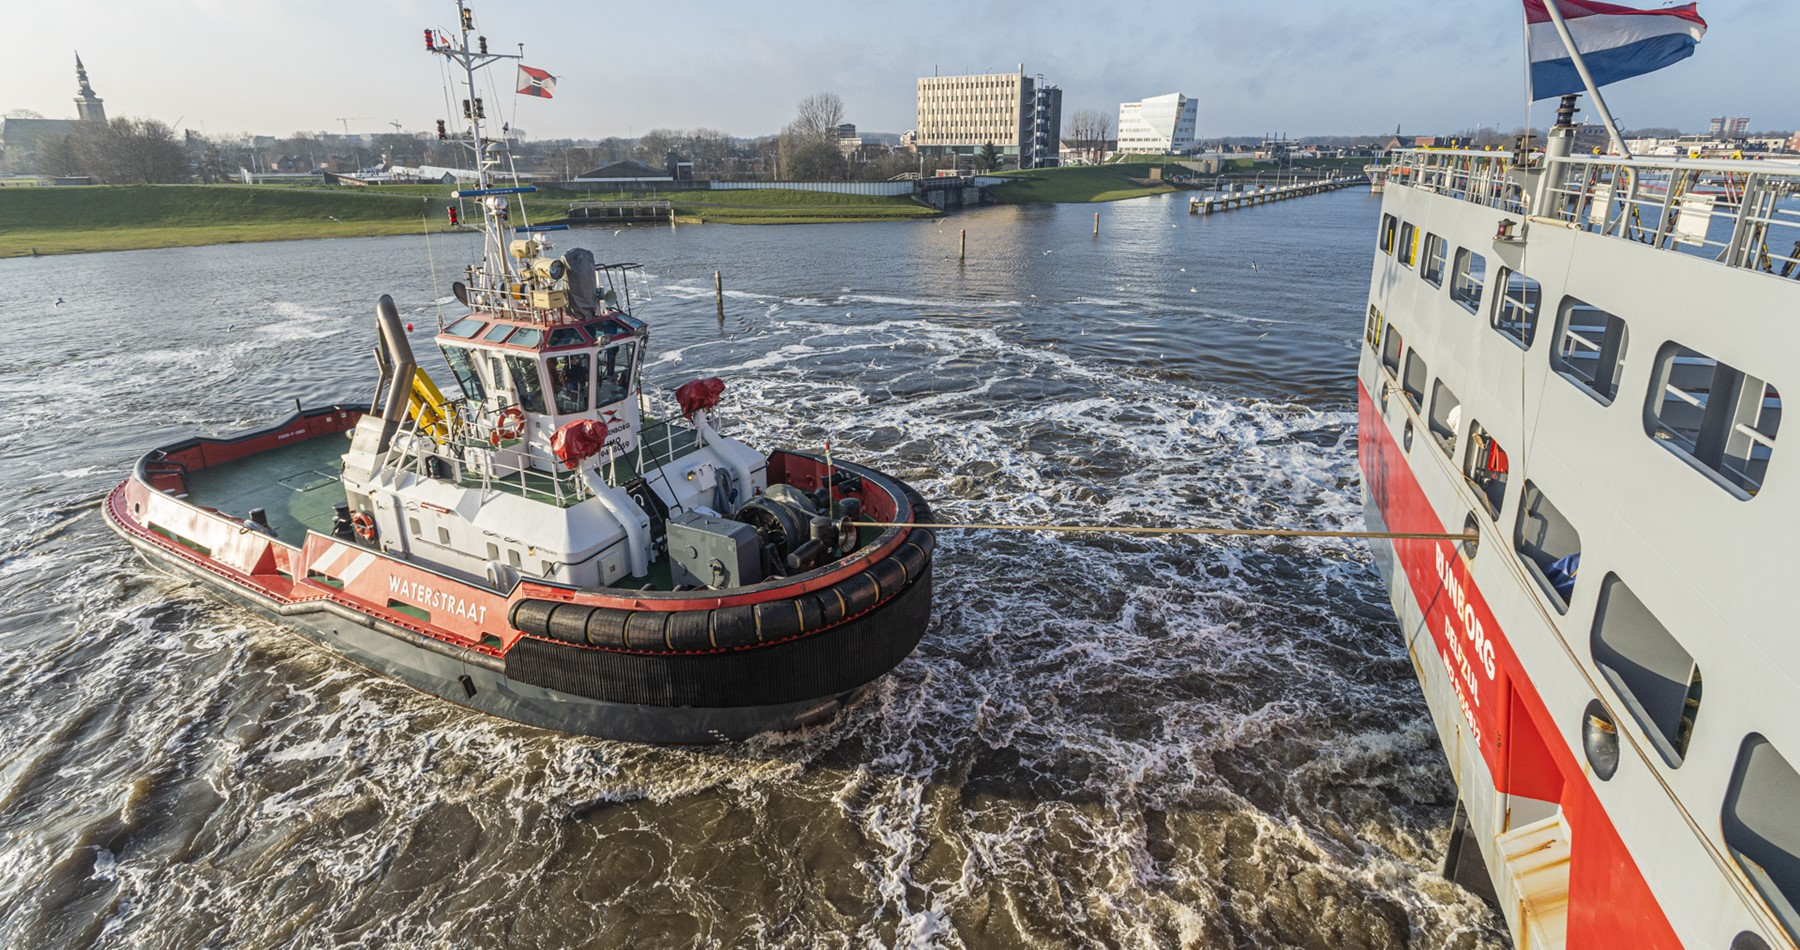 Tug assistance for MV Rijnborg in port of Delfzijl